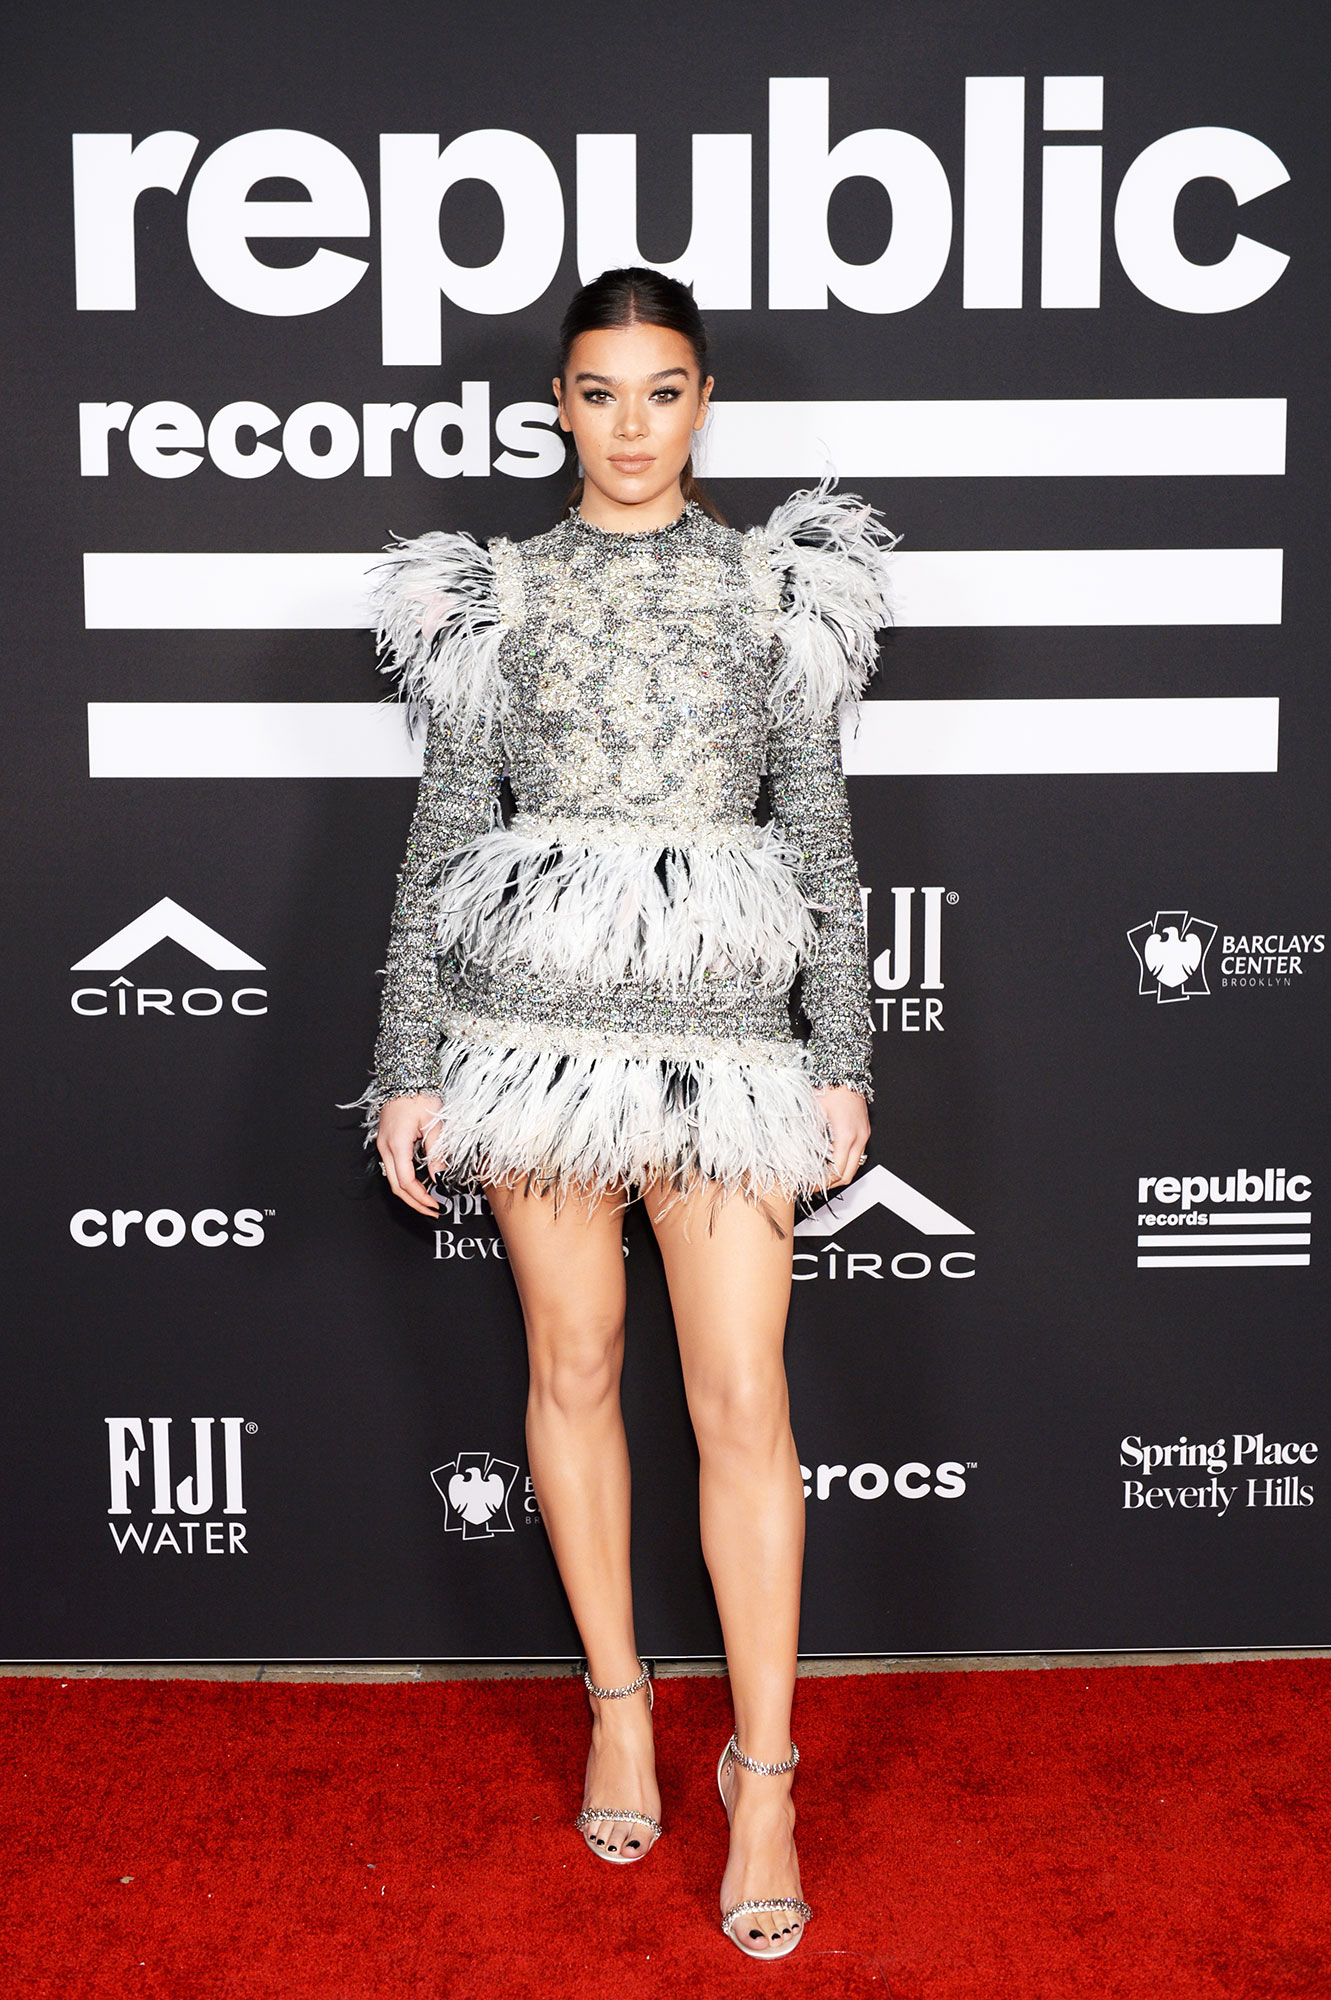 grammys 2019 Hailee Steinfeld - The Bumblebee actress joined friends Turner and Jonas at the Republic Records Grammy After Party wearing a feathery long-sleeve minidress.